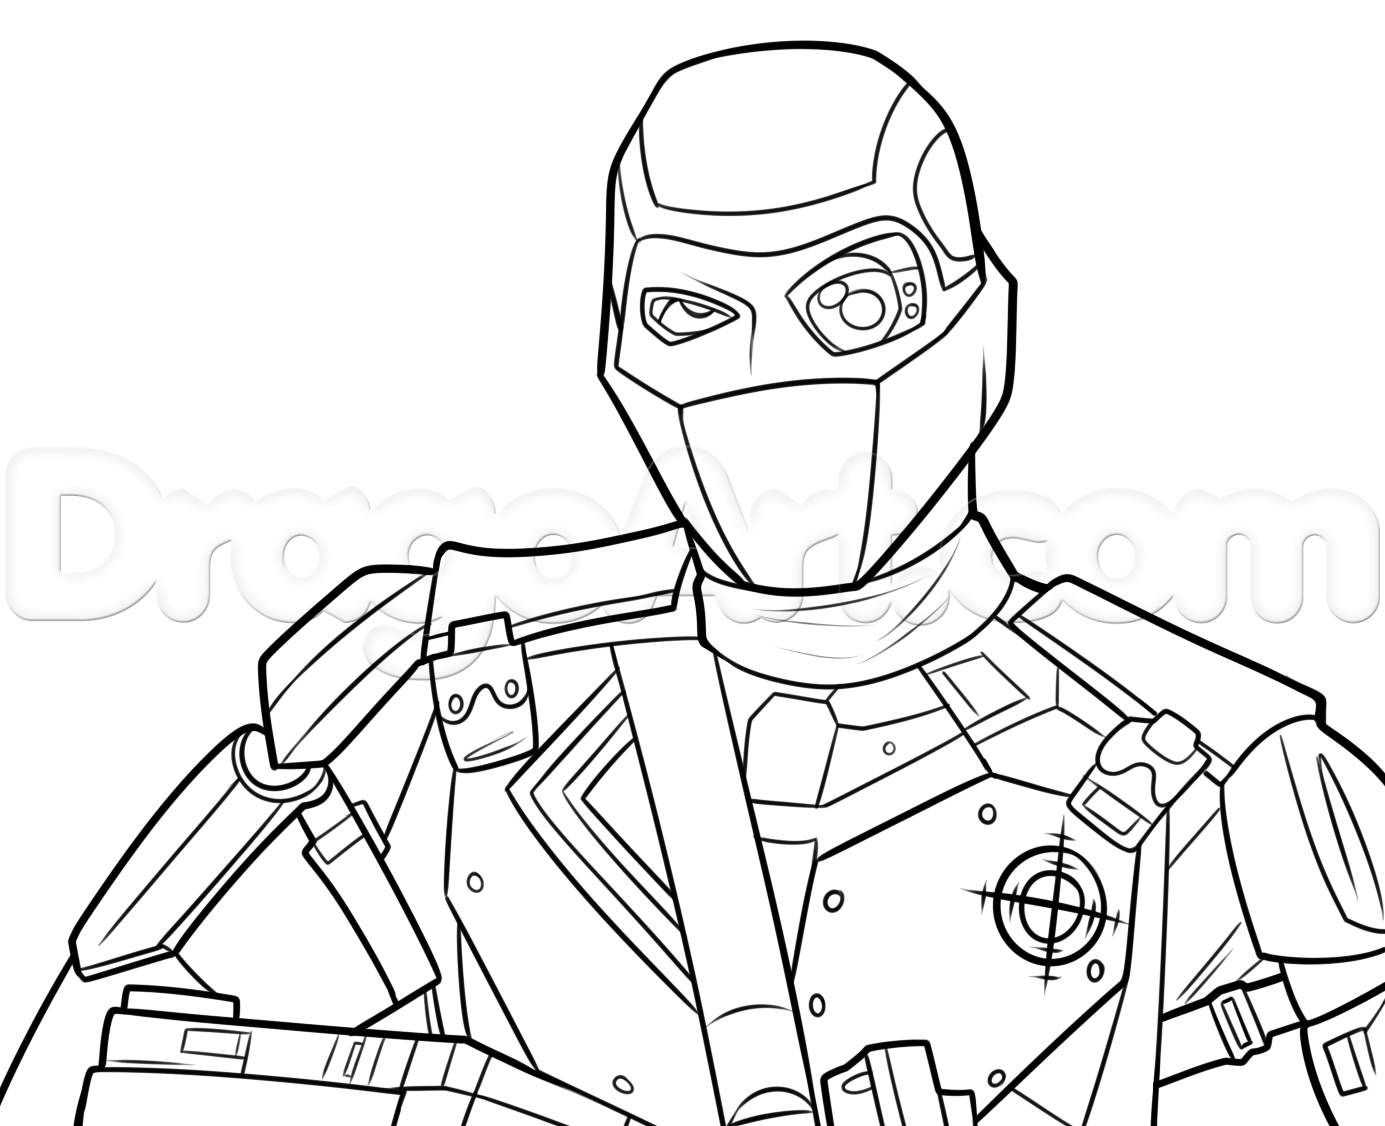 Deadshot Coloring Pages At GetDrawings.com